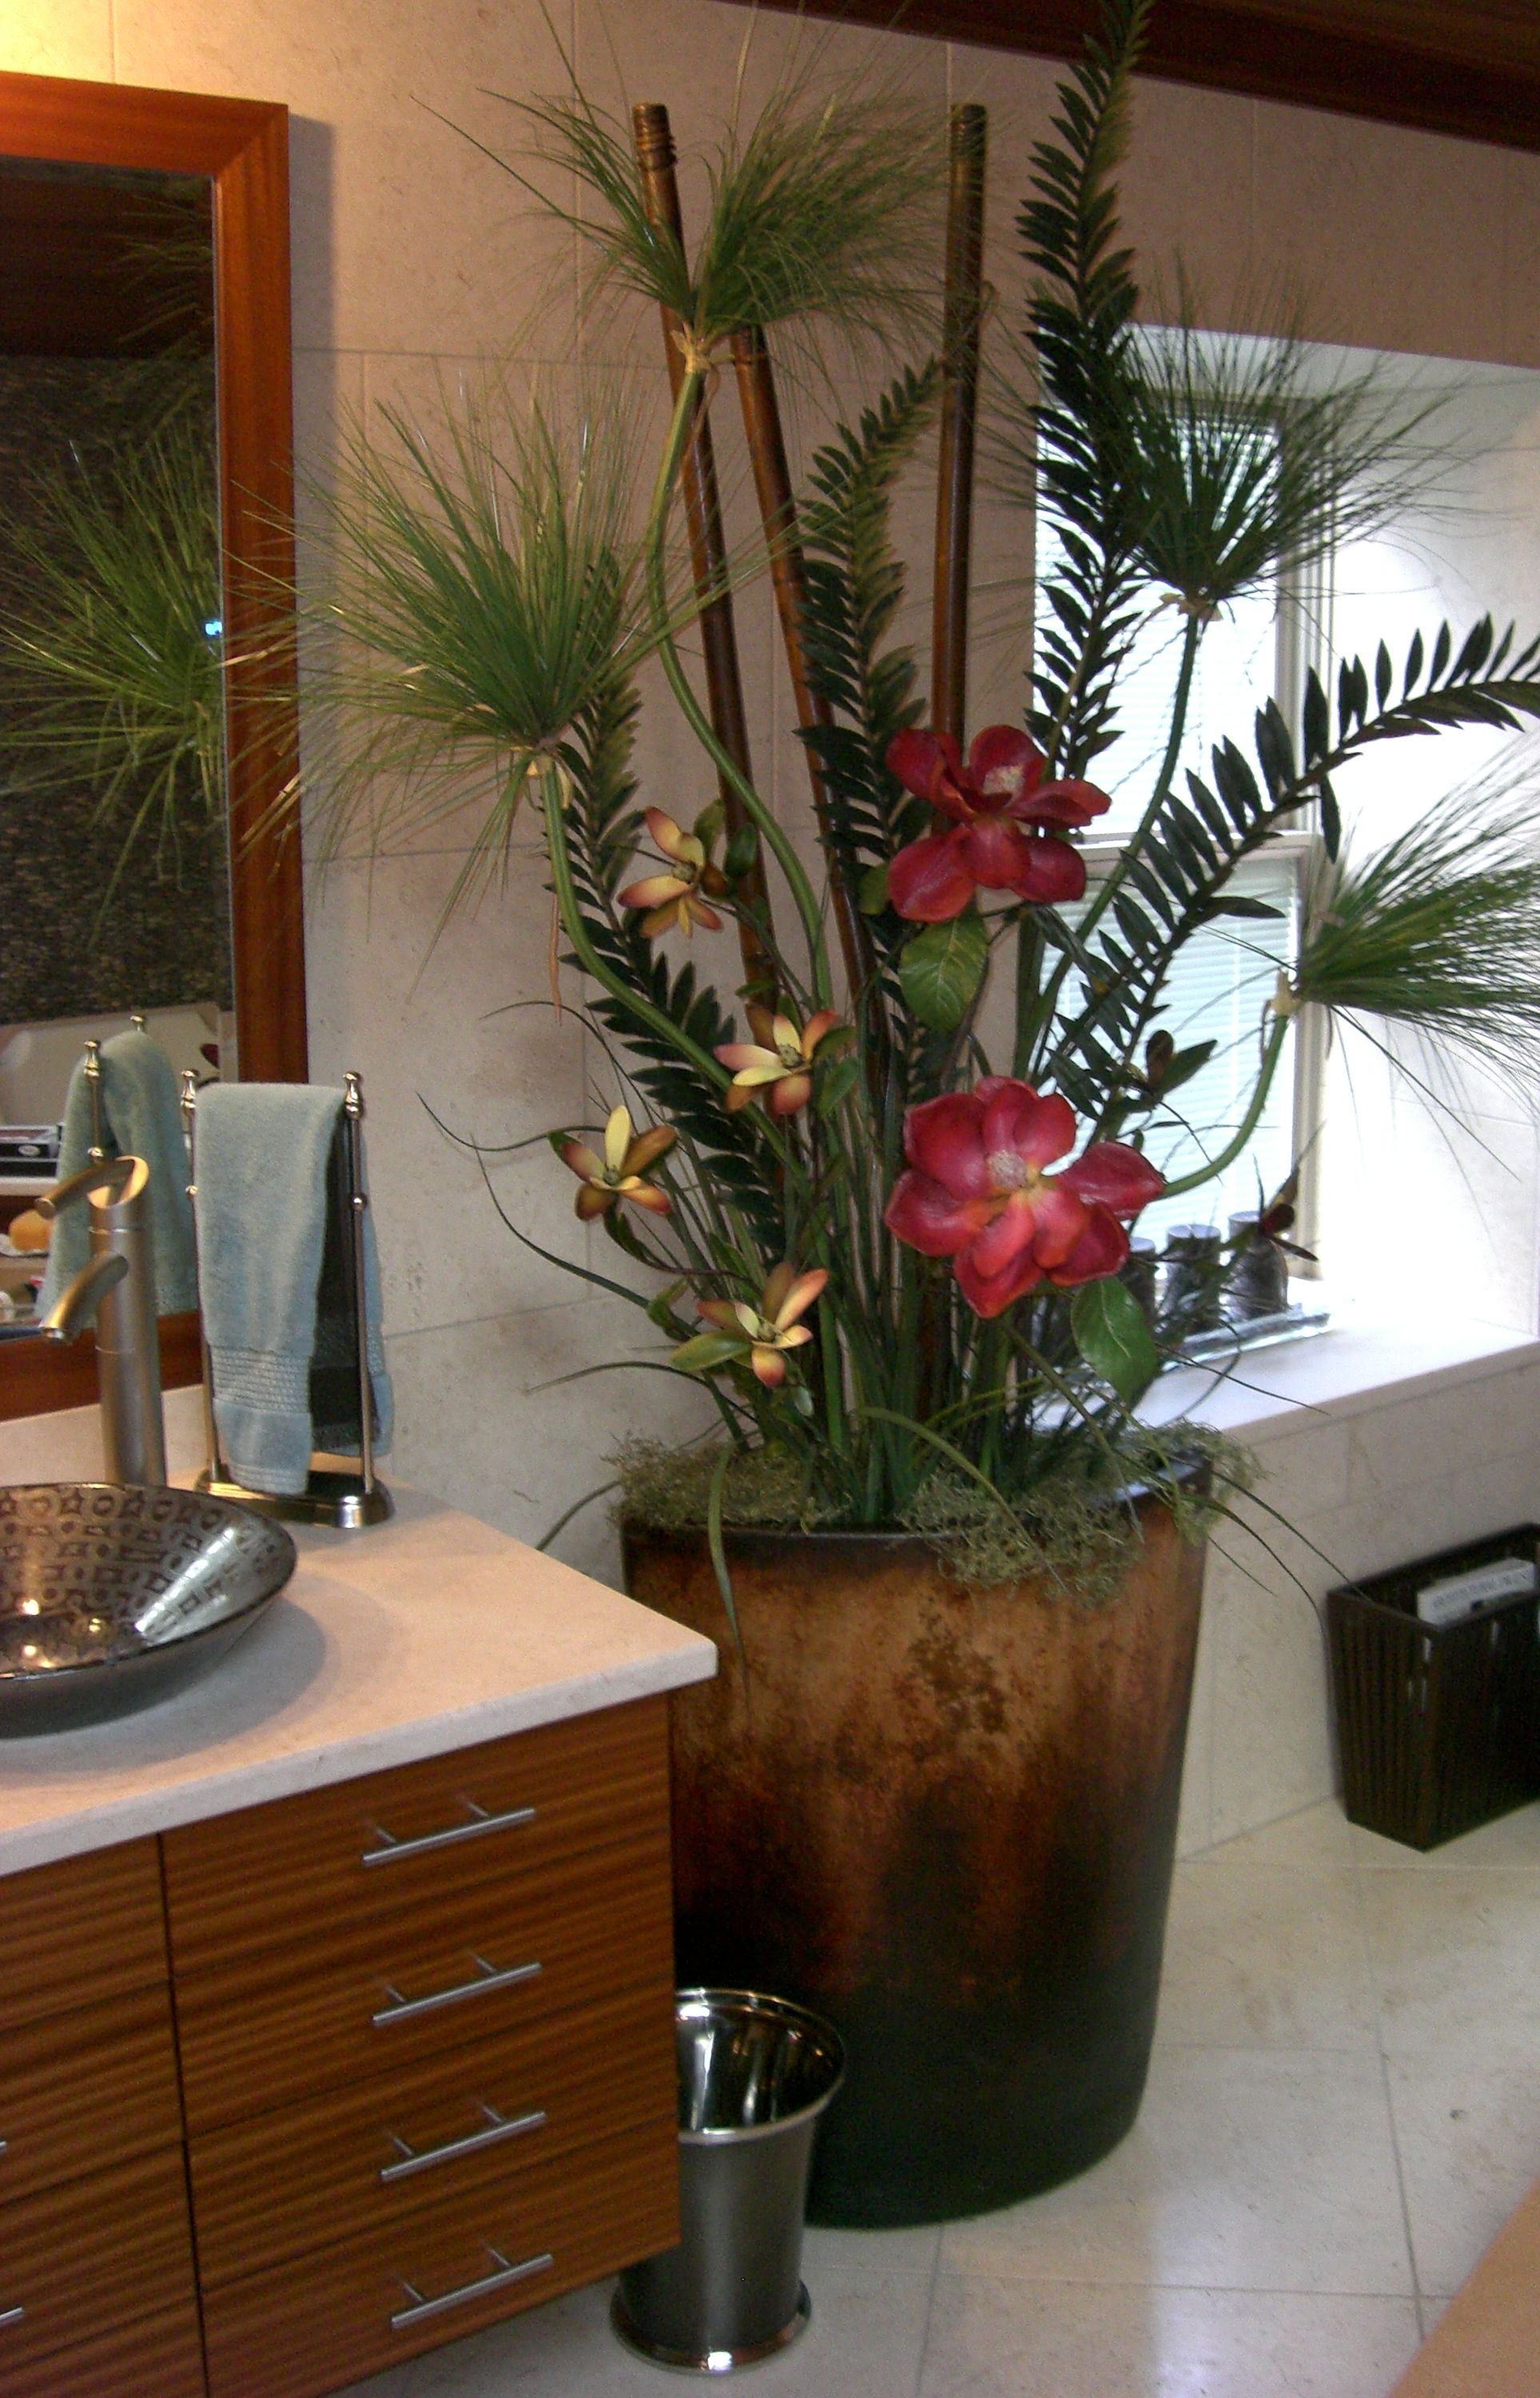 Tall Vases Home Decor This Was The Homeowner 39s Container We Created This